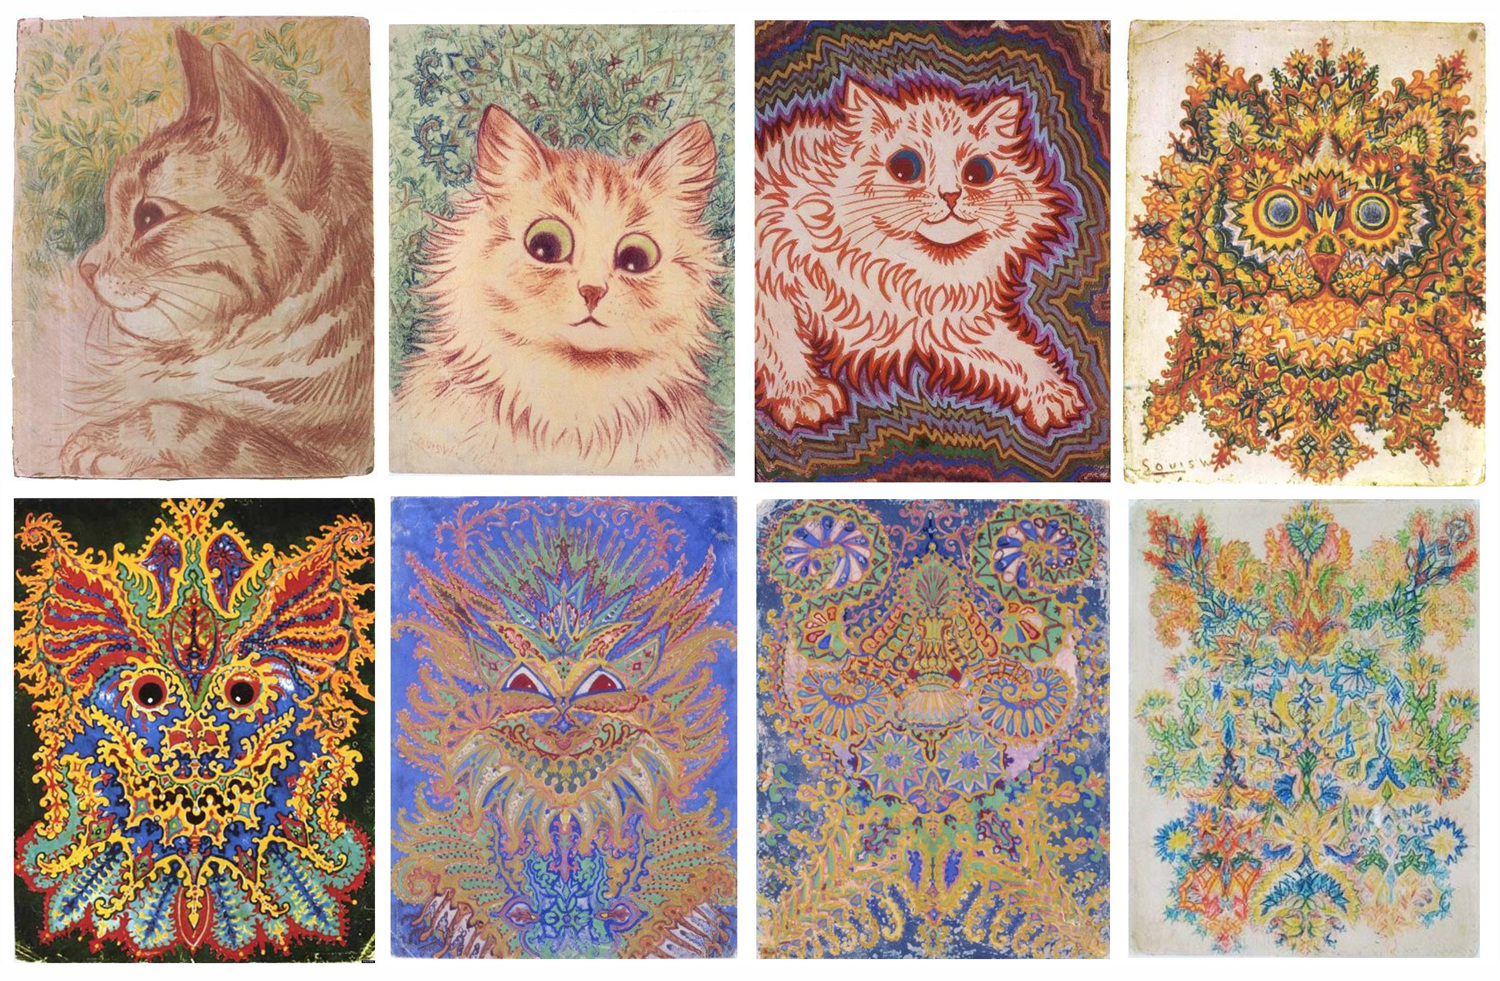 Cute Cats and Psychedelia: The Tragic Life of Louis Wain - Illustration  Chronicles